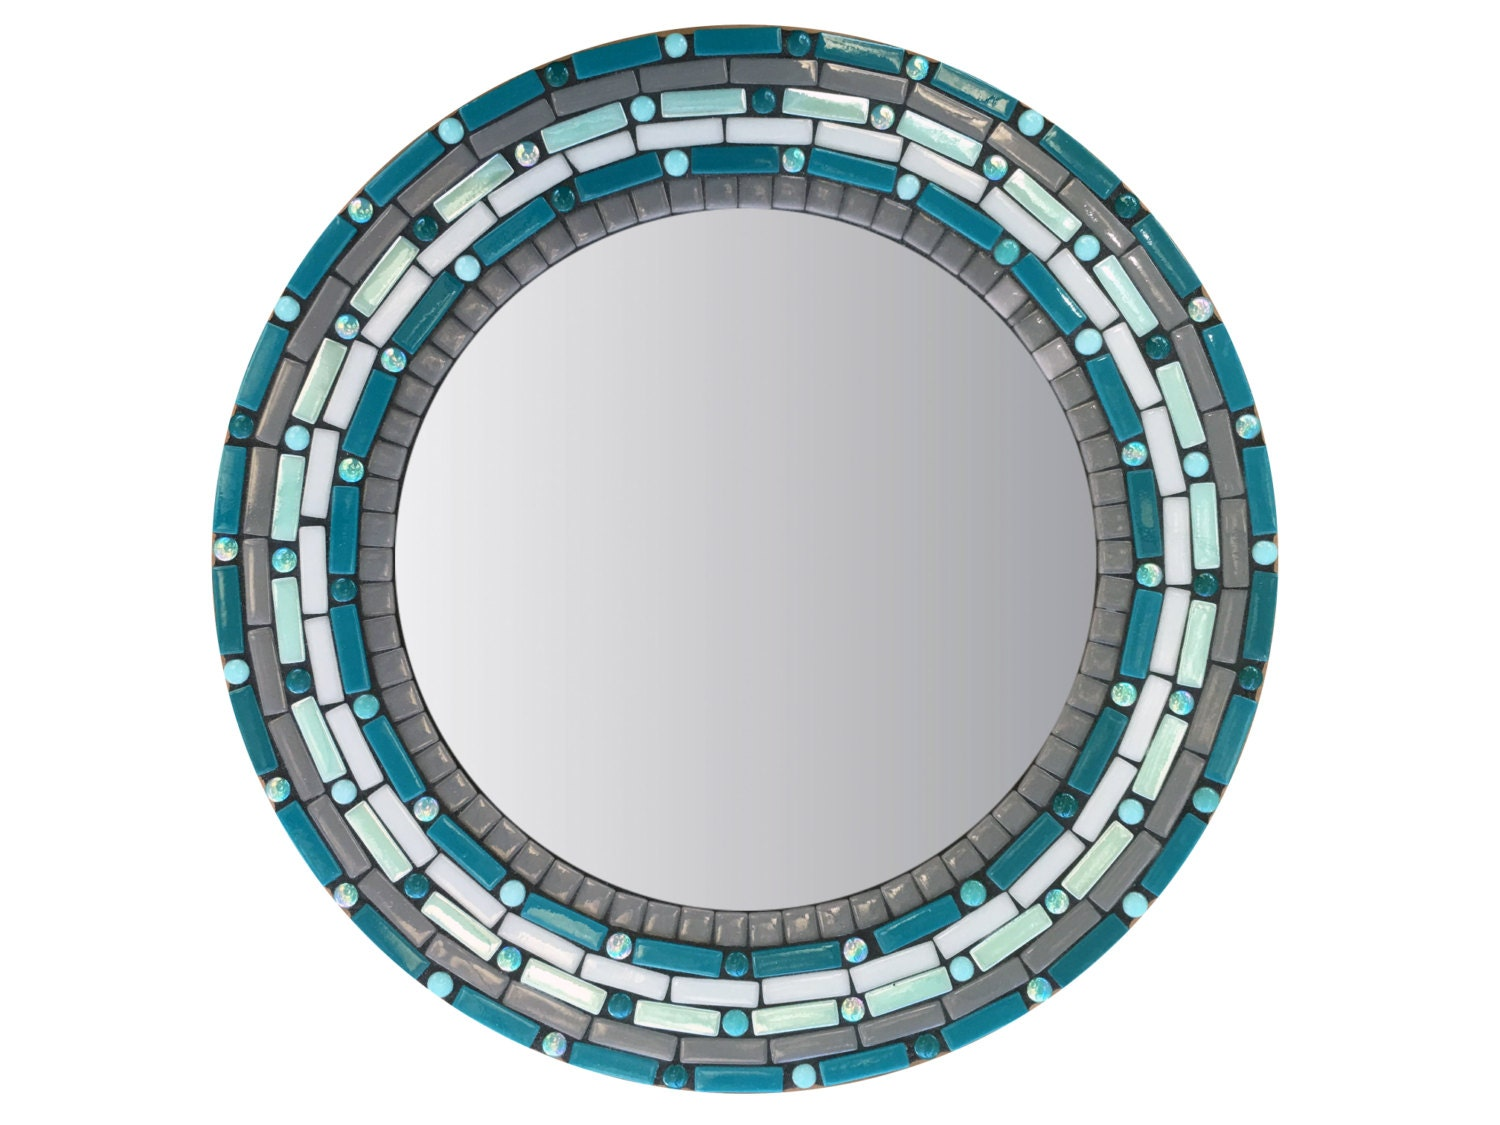 Teal and gray round wall mirror accent mirror mosaic mirror for Mosaic mirror